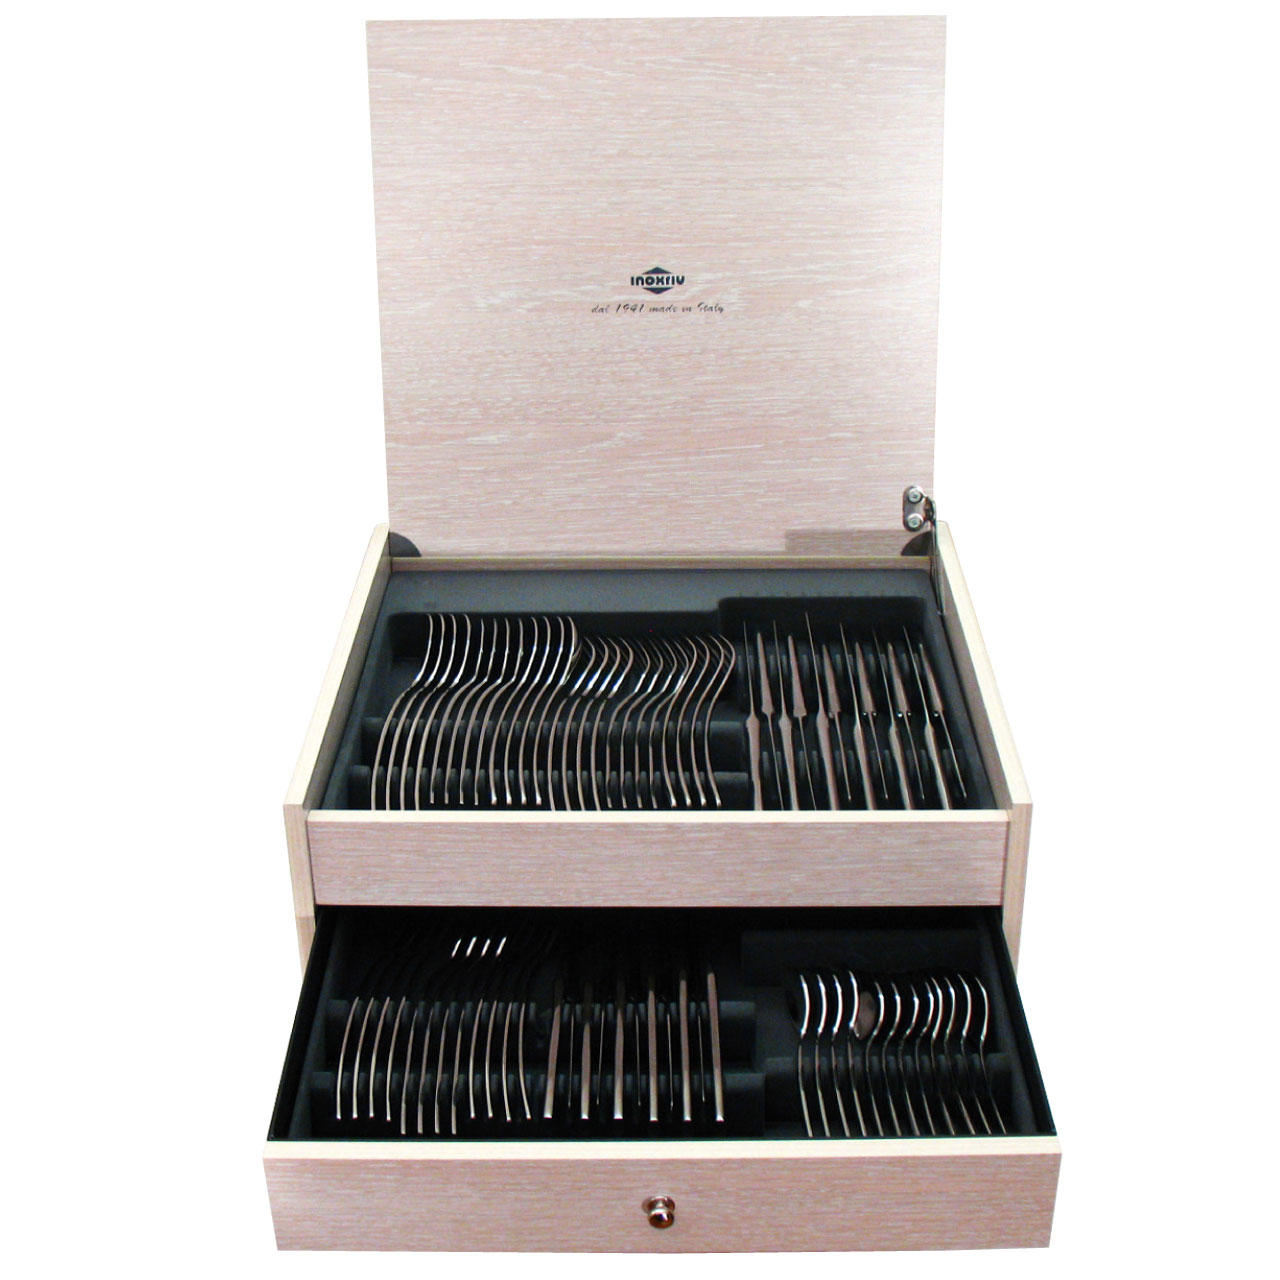 66010072 72 pcs. cutlery set Regular Luxury Case